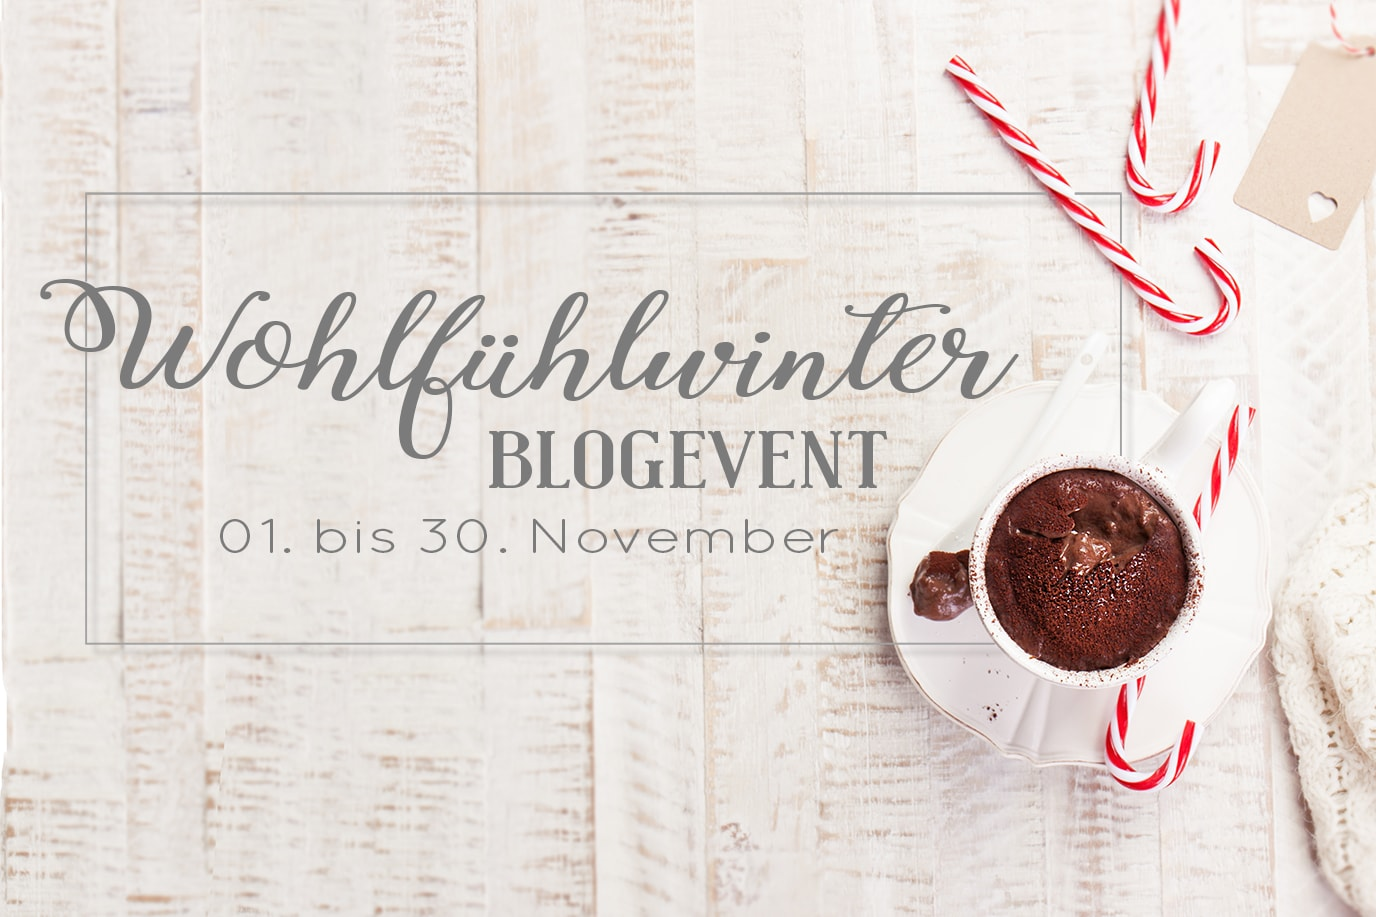 Wohlfuehlwinter-Blogevent